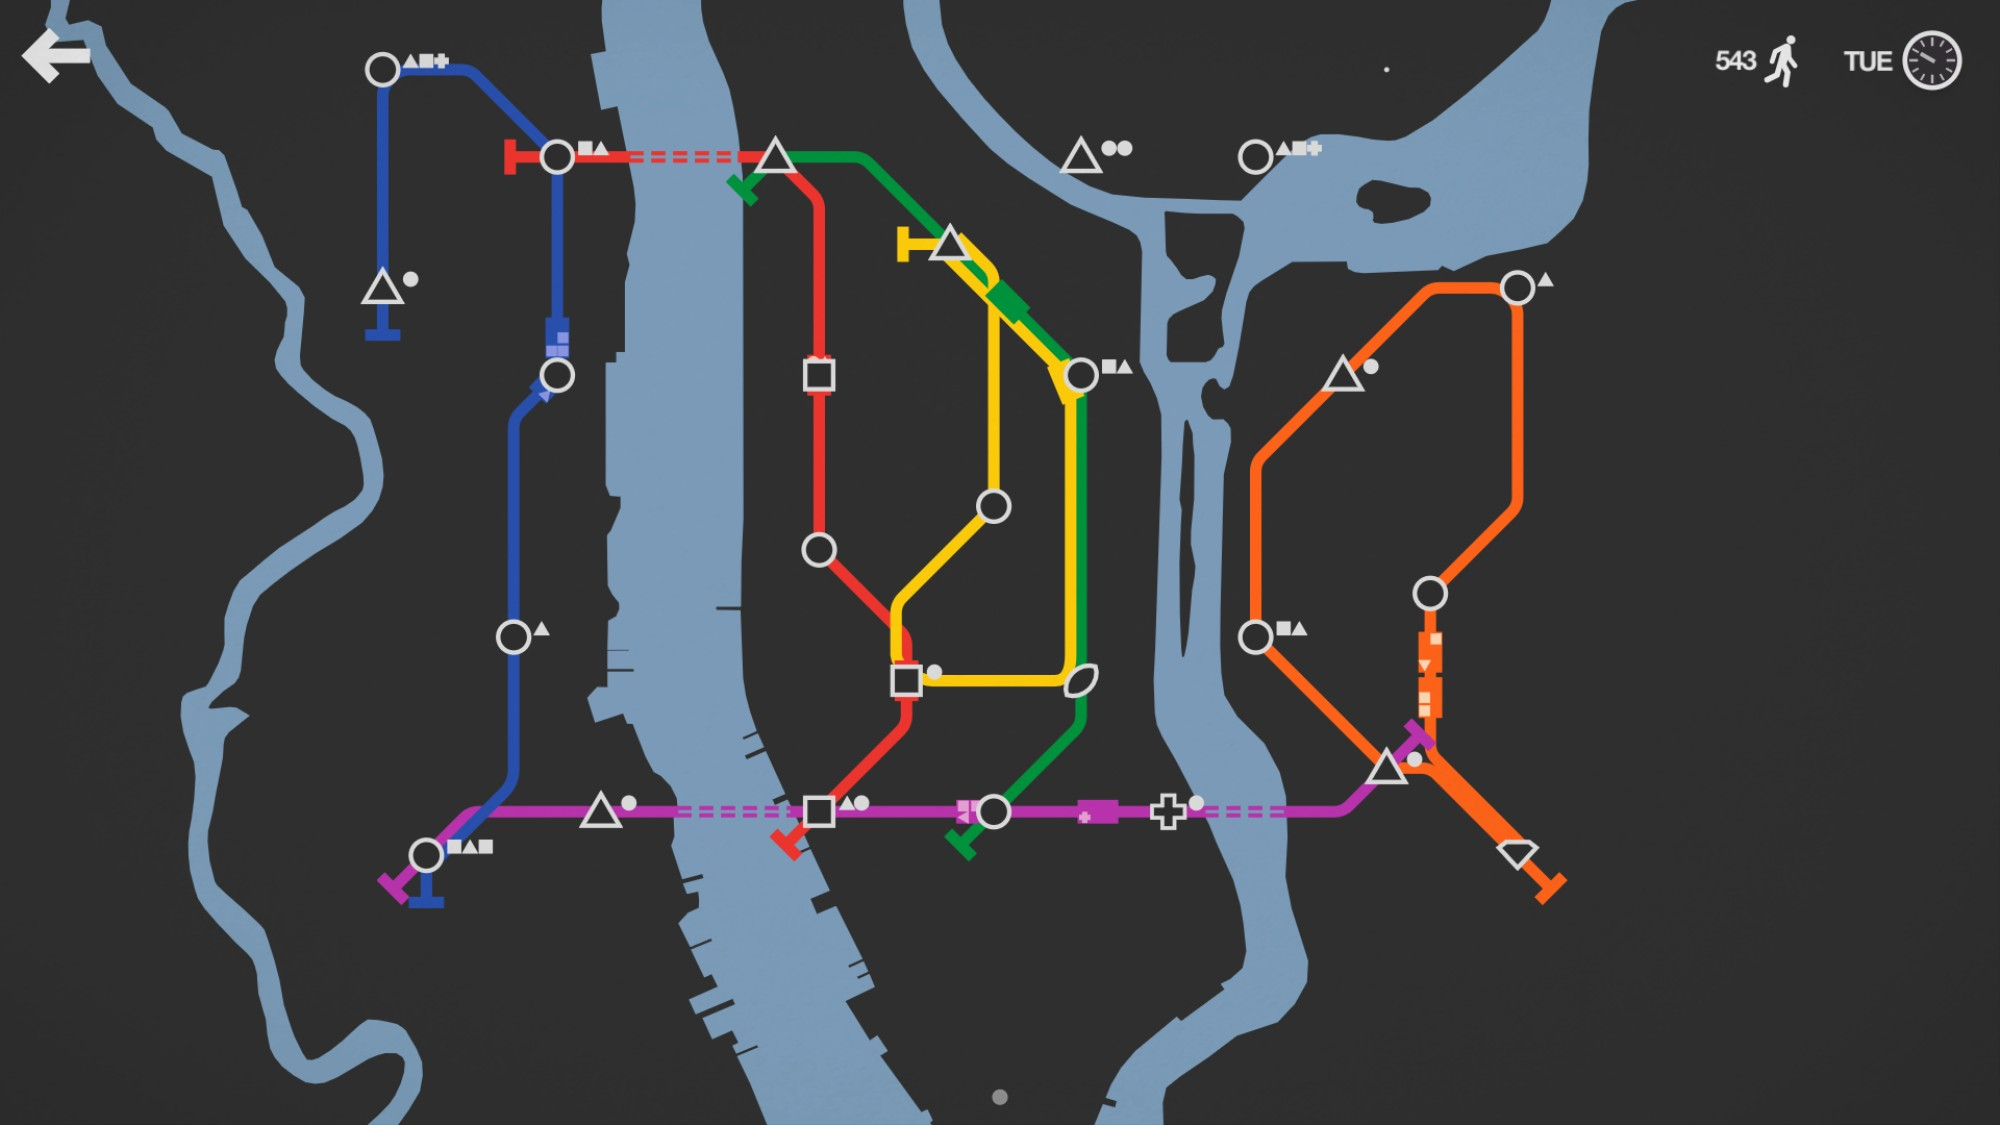 Ideal Nyc Subway Map Efficient.We Asked A Transit Planner How To Up Our Mini Metro Game Vice